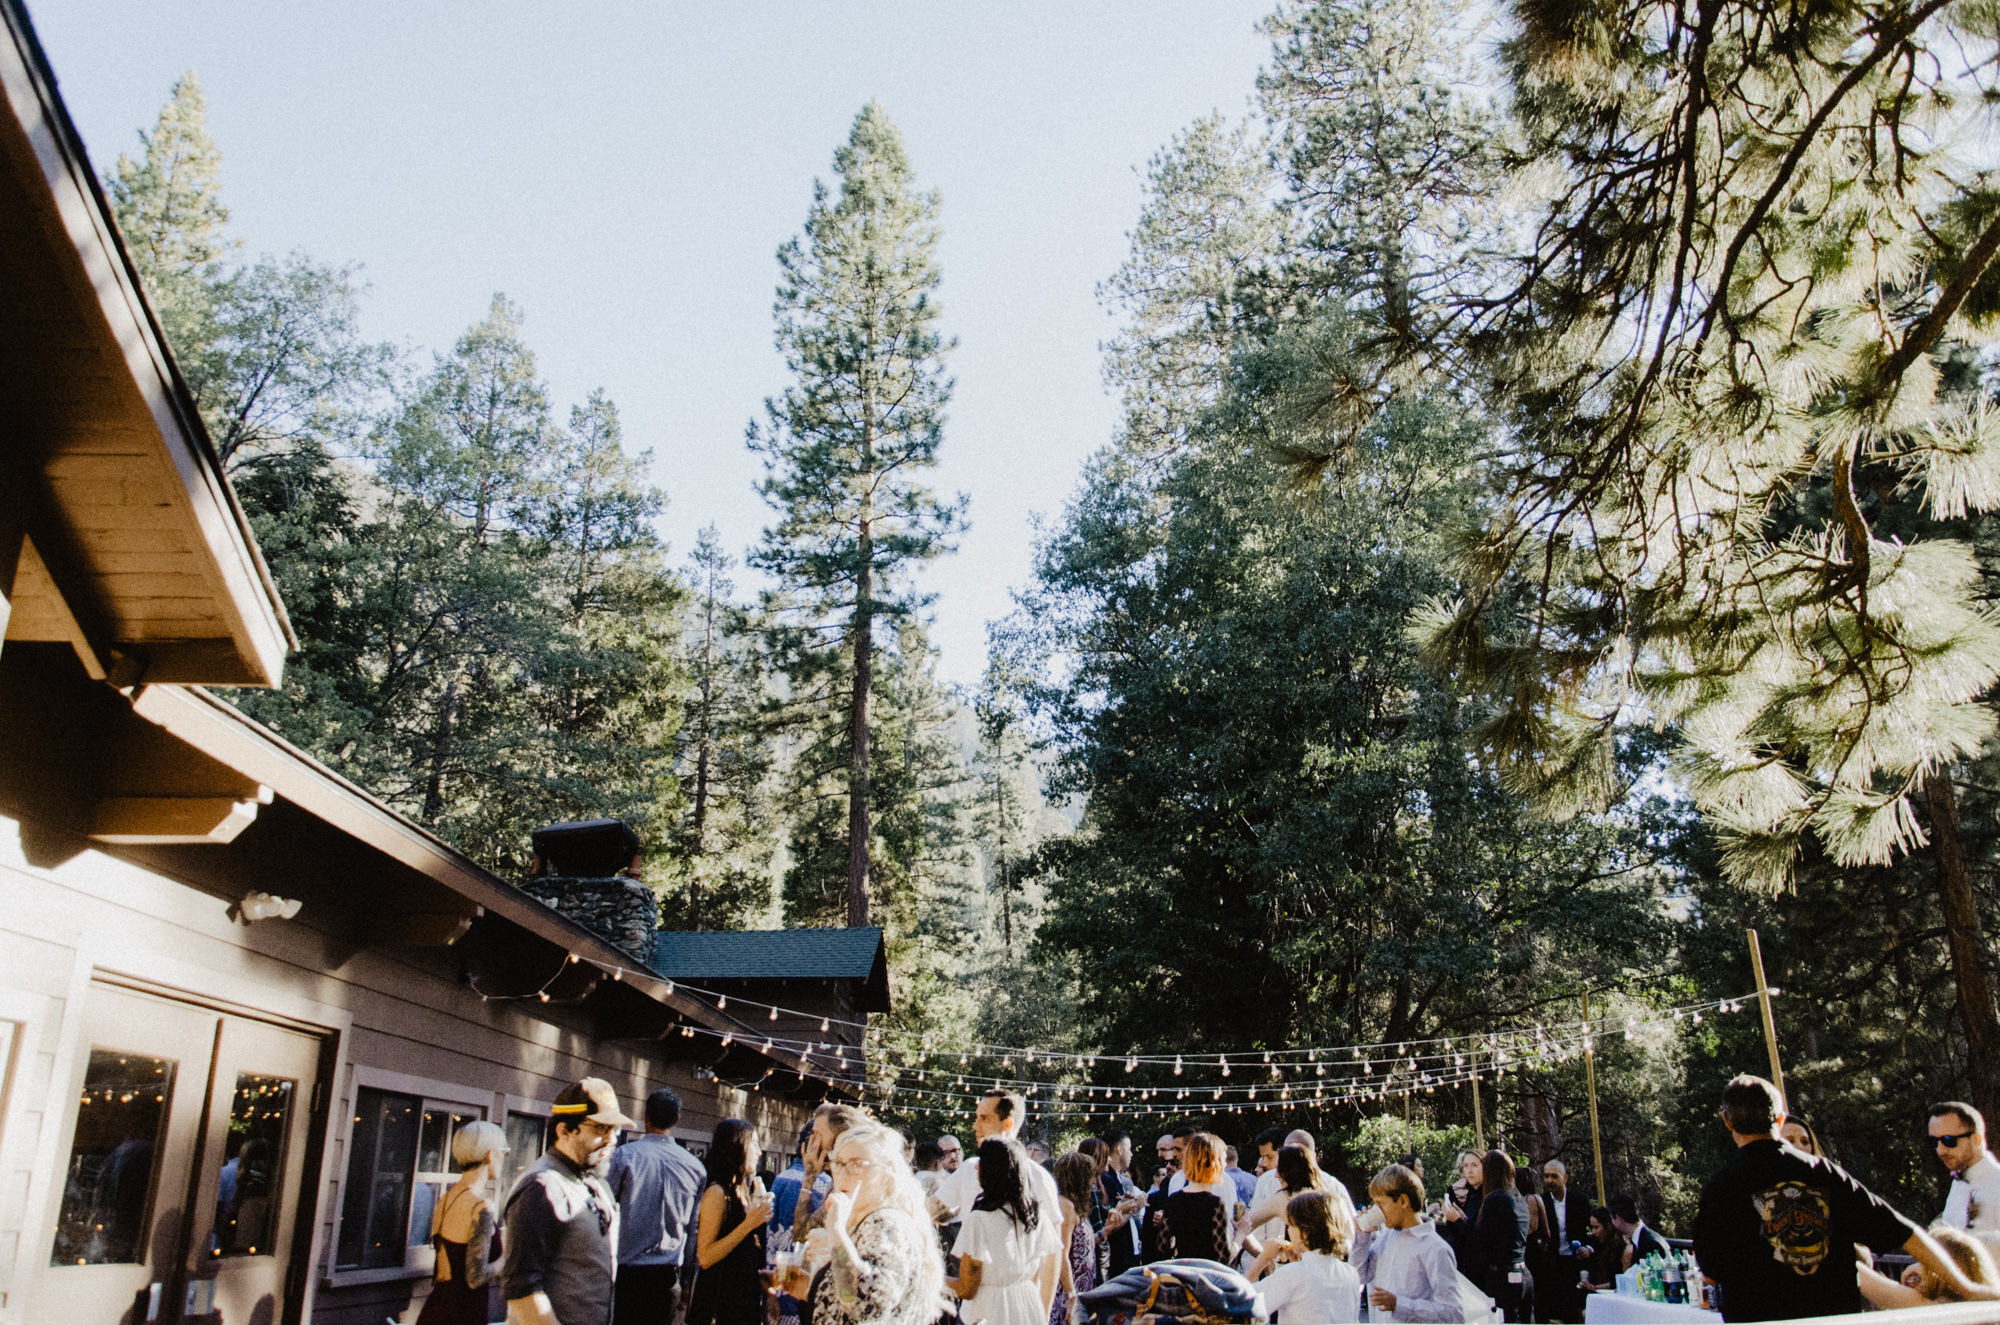 YMCA camp round meadow wedding -103.jpg